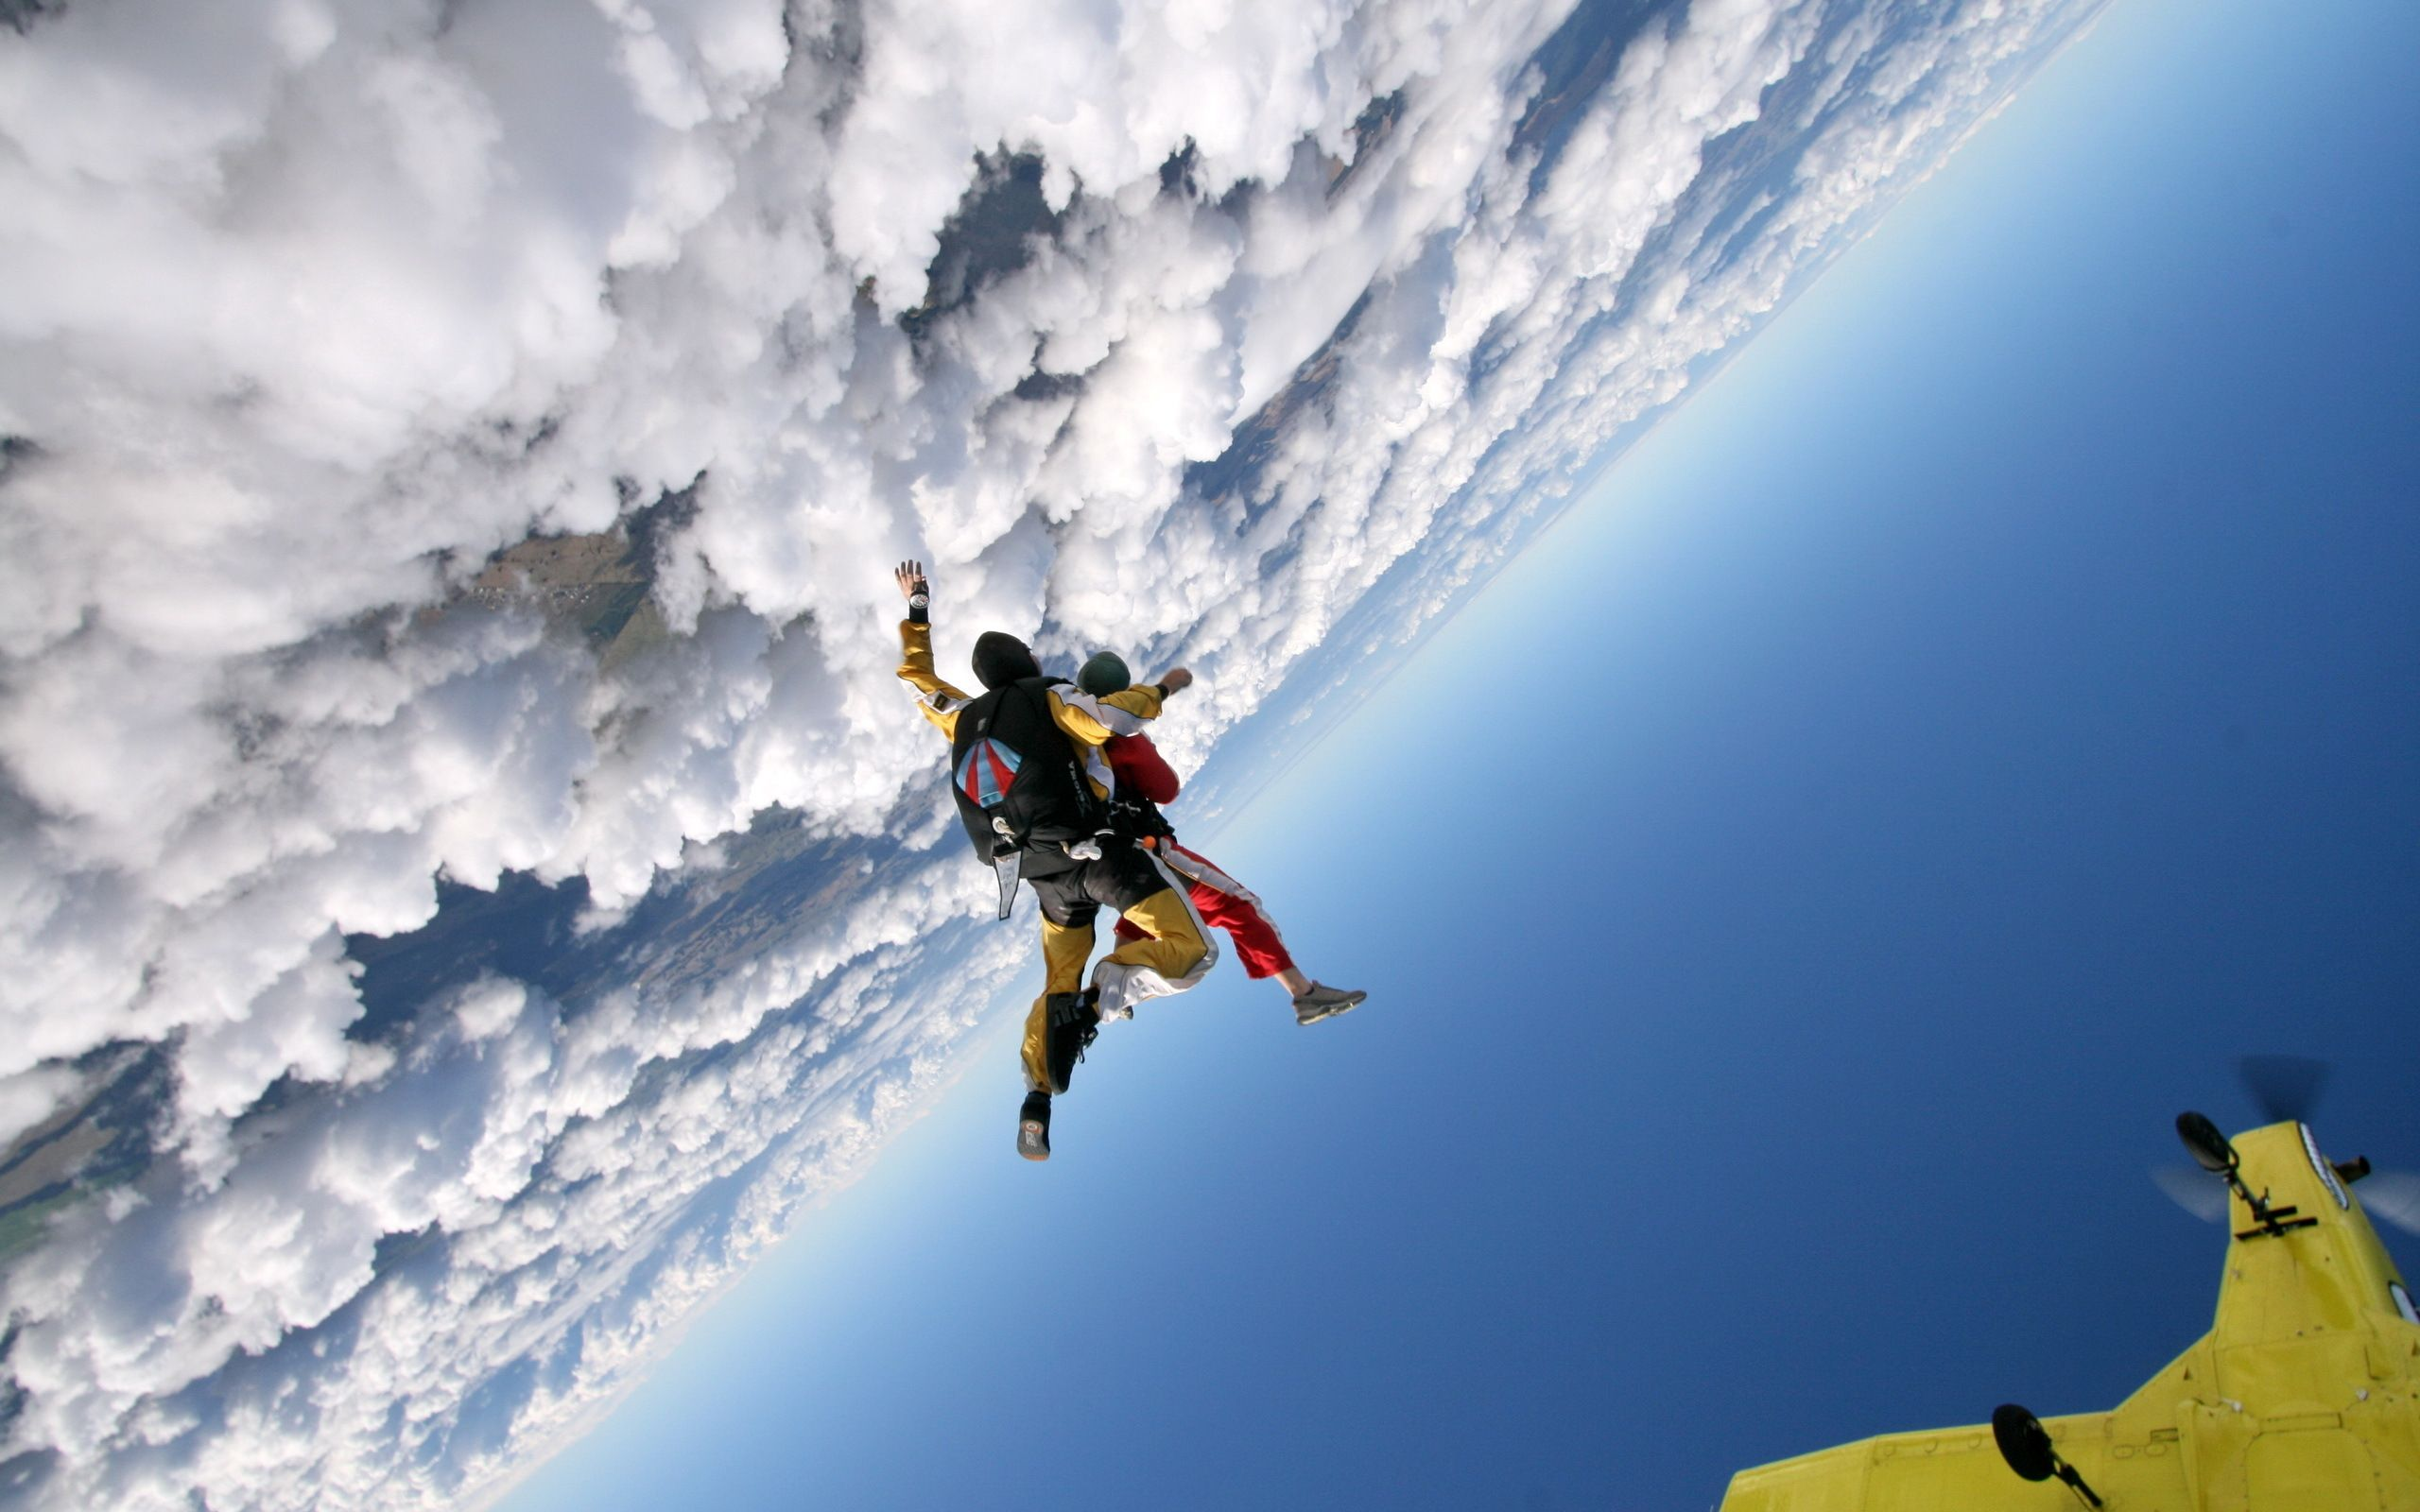 Nice Hd Skydive Image For Free Skydiving Sports Wallpapers